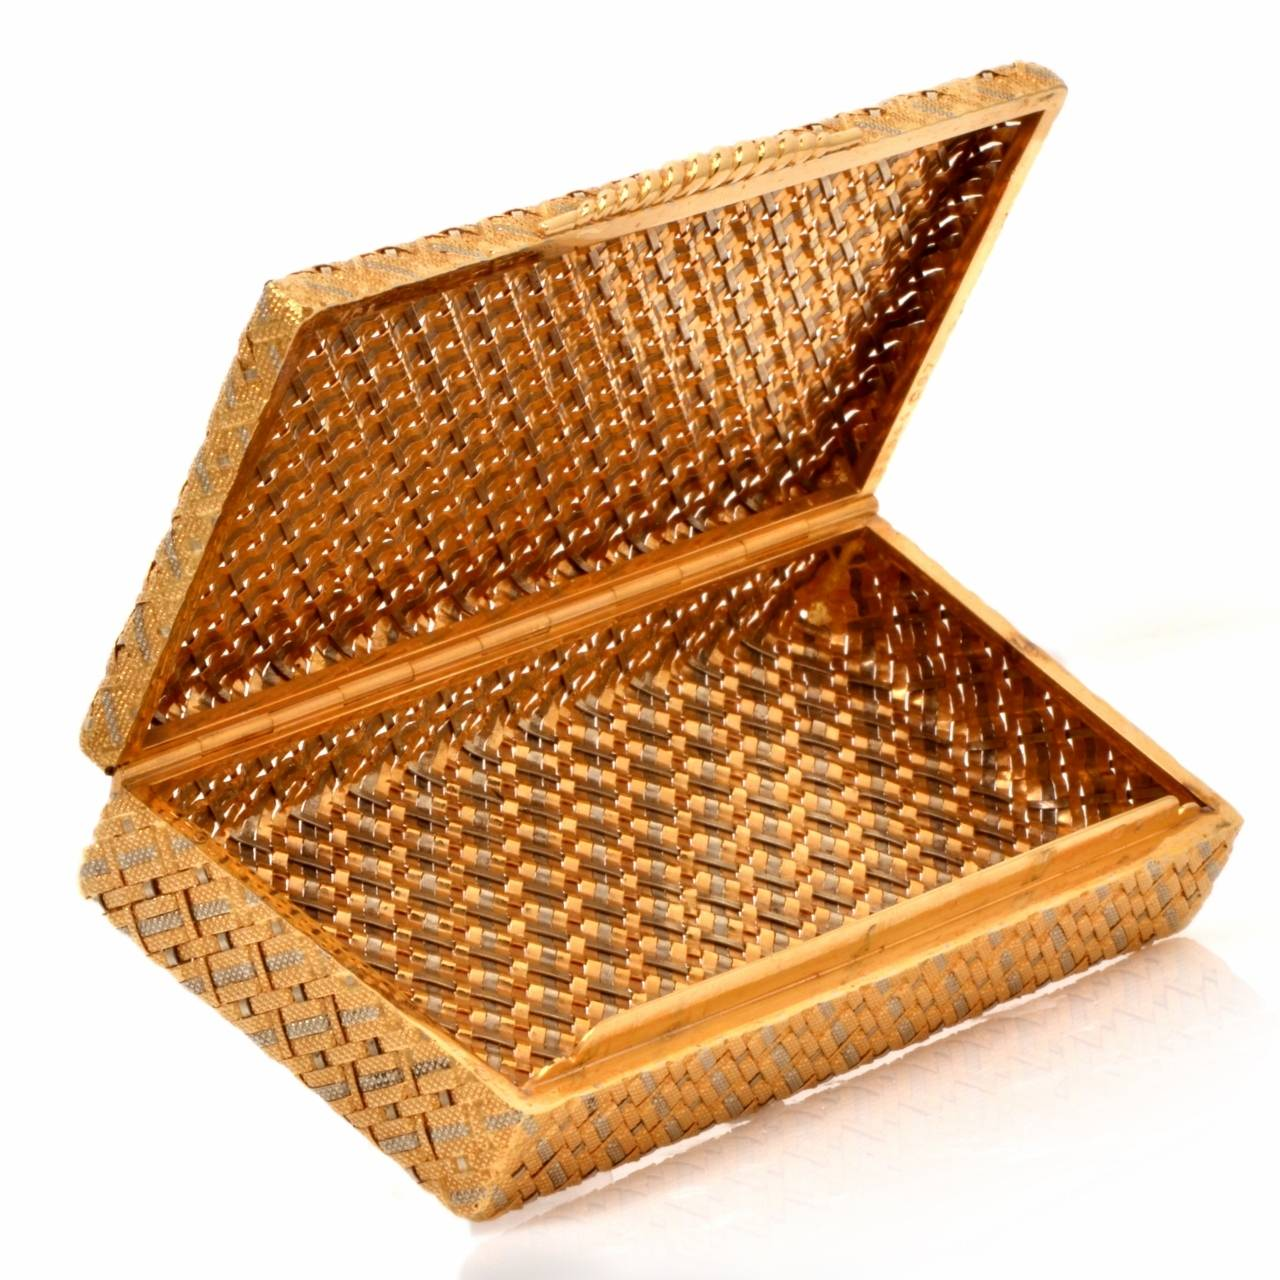 Van Cleef And Arpels Textured Gold Box At 1stdibs